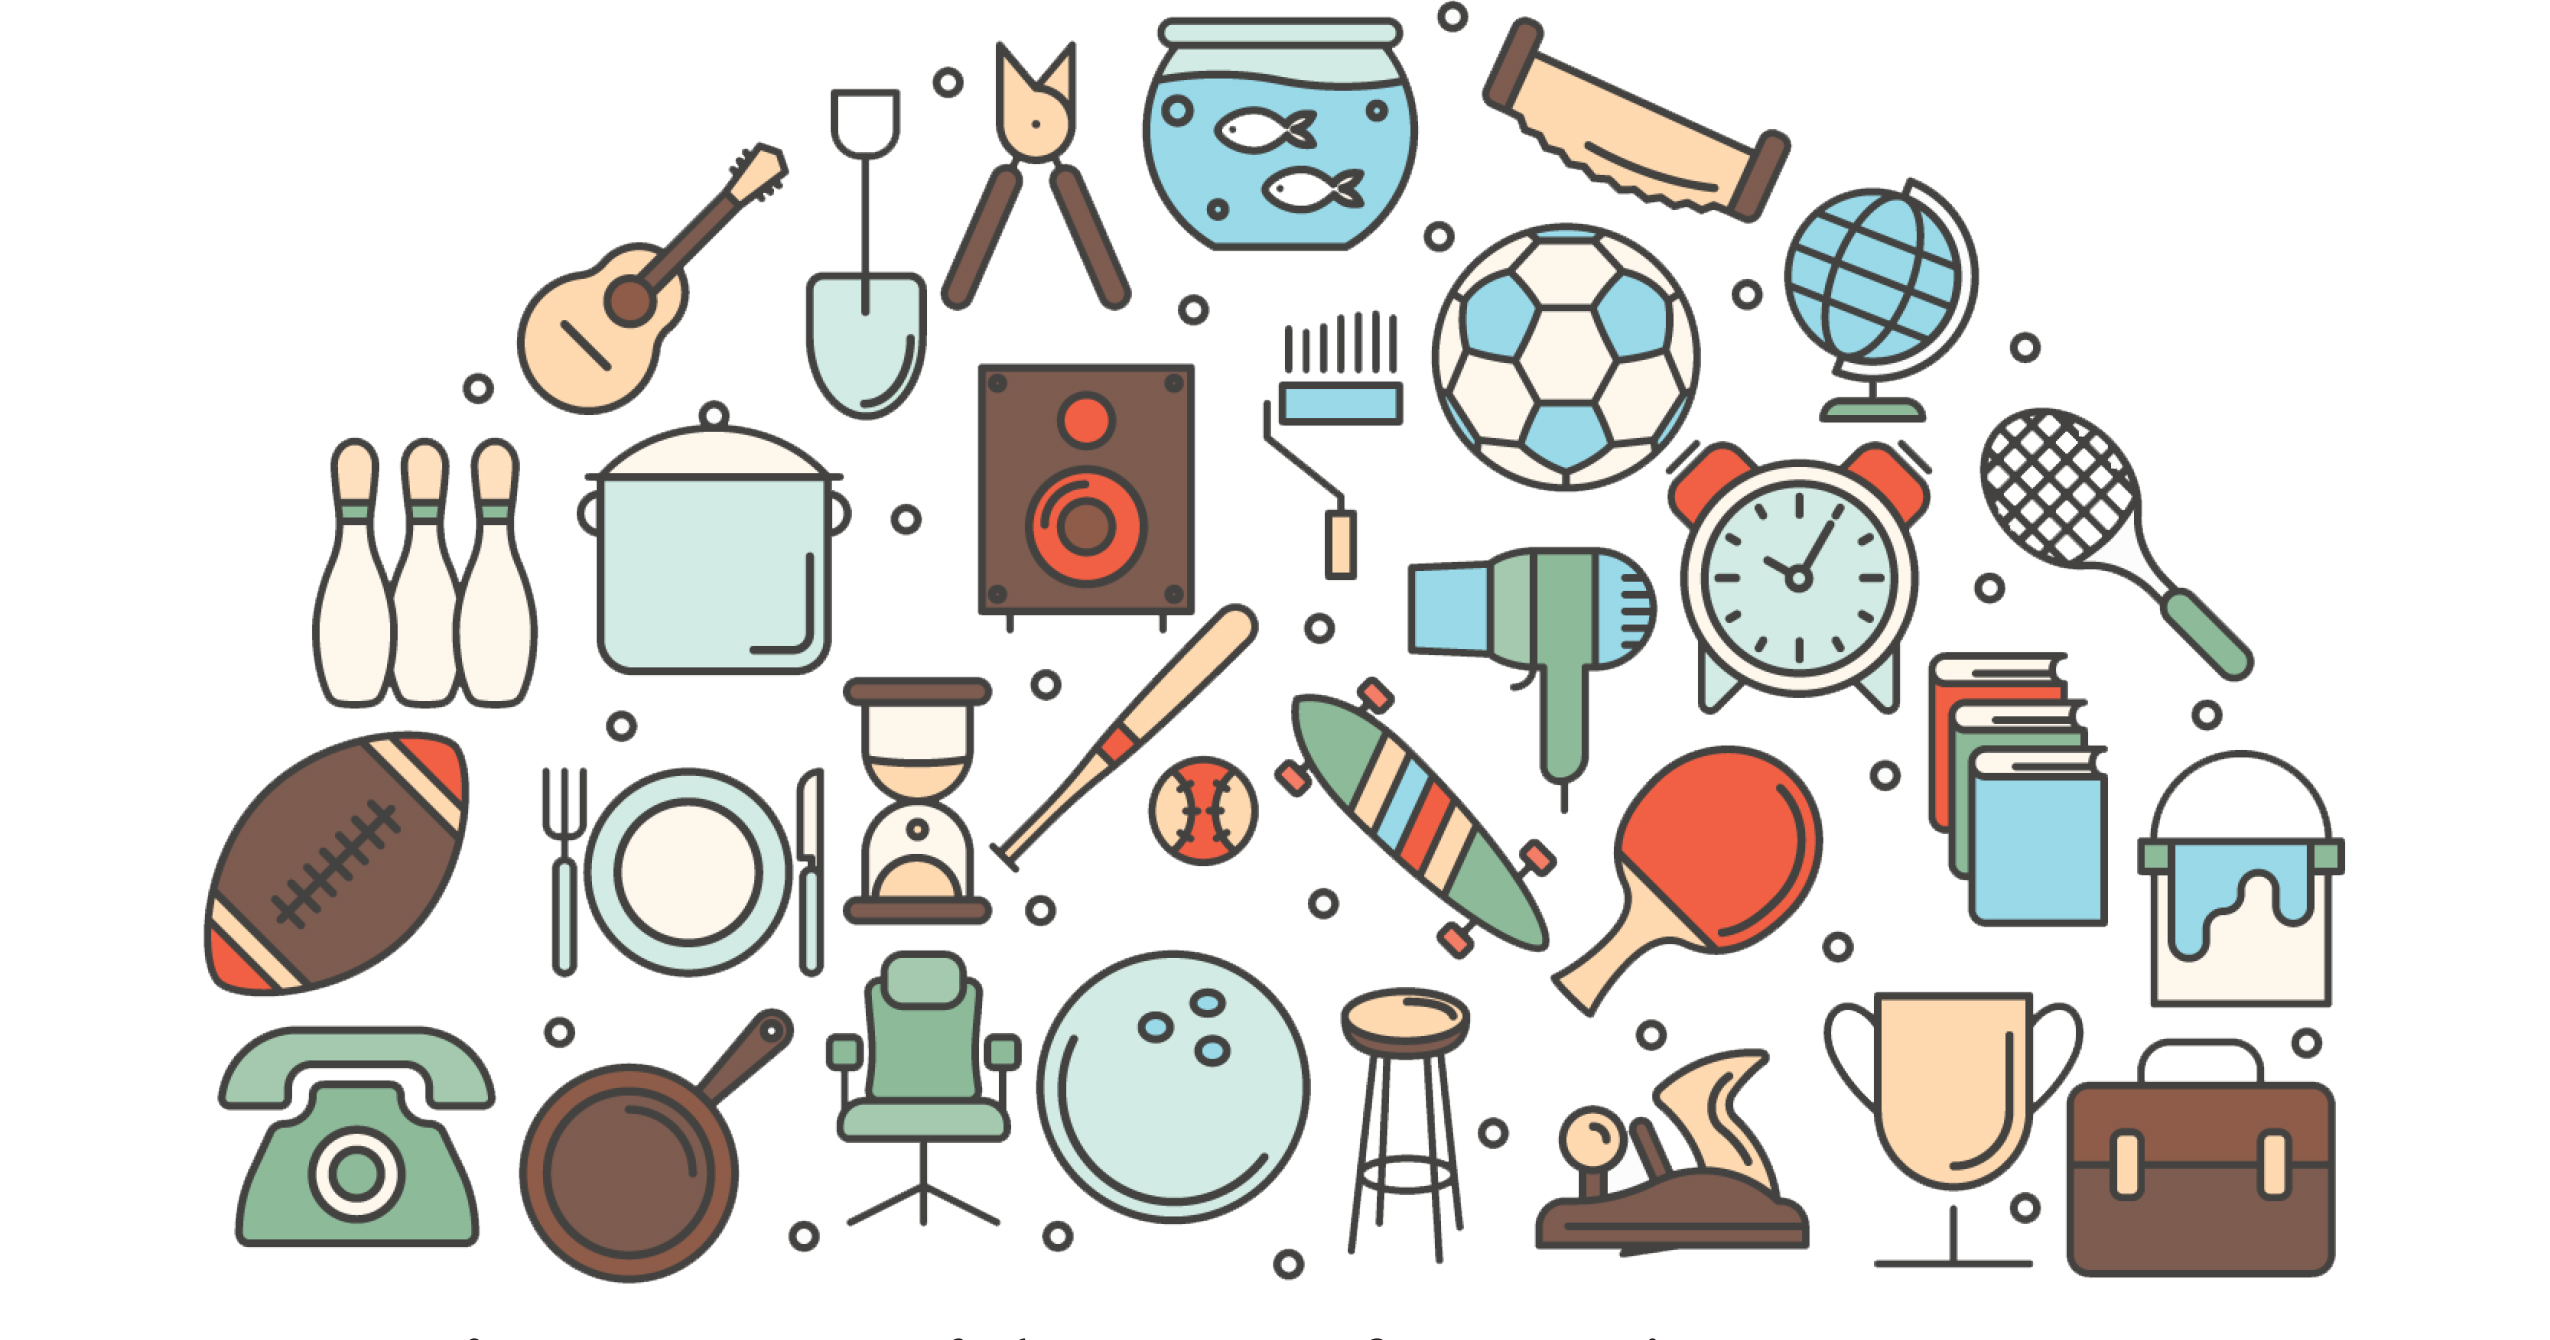 Illustration of household items for a yard sale.